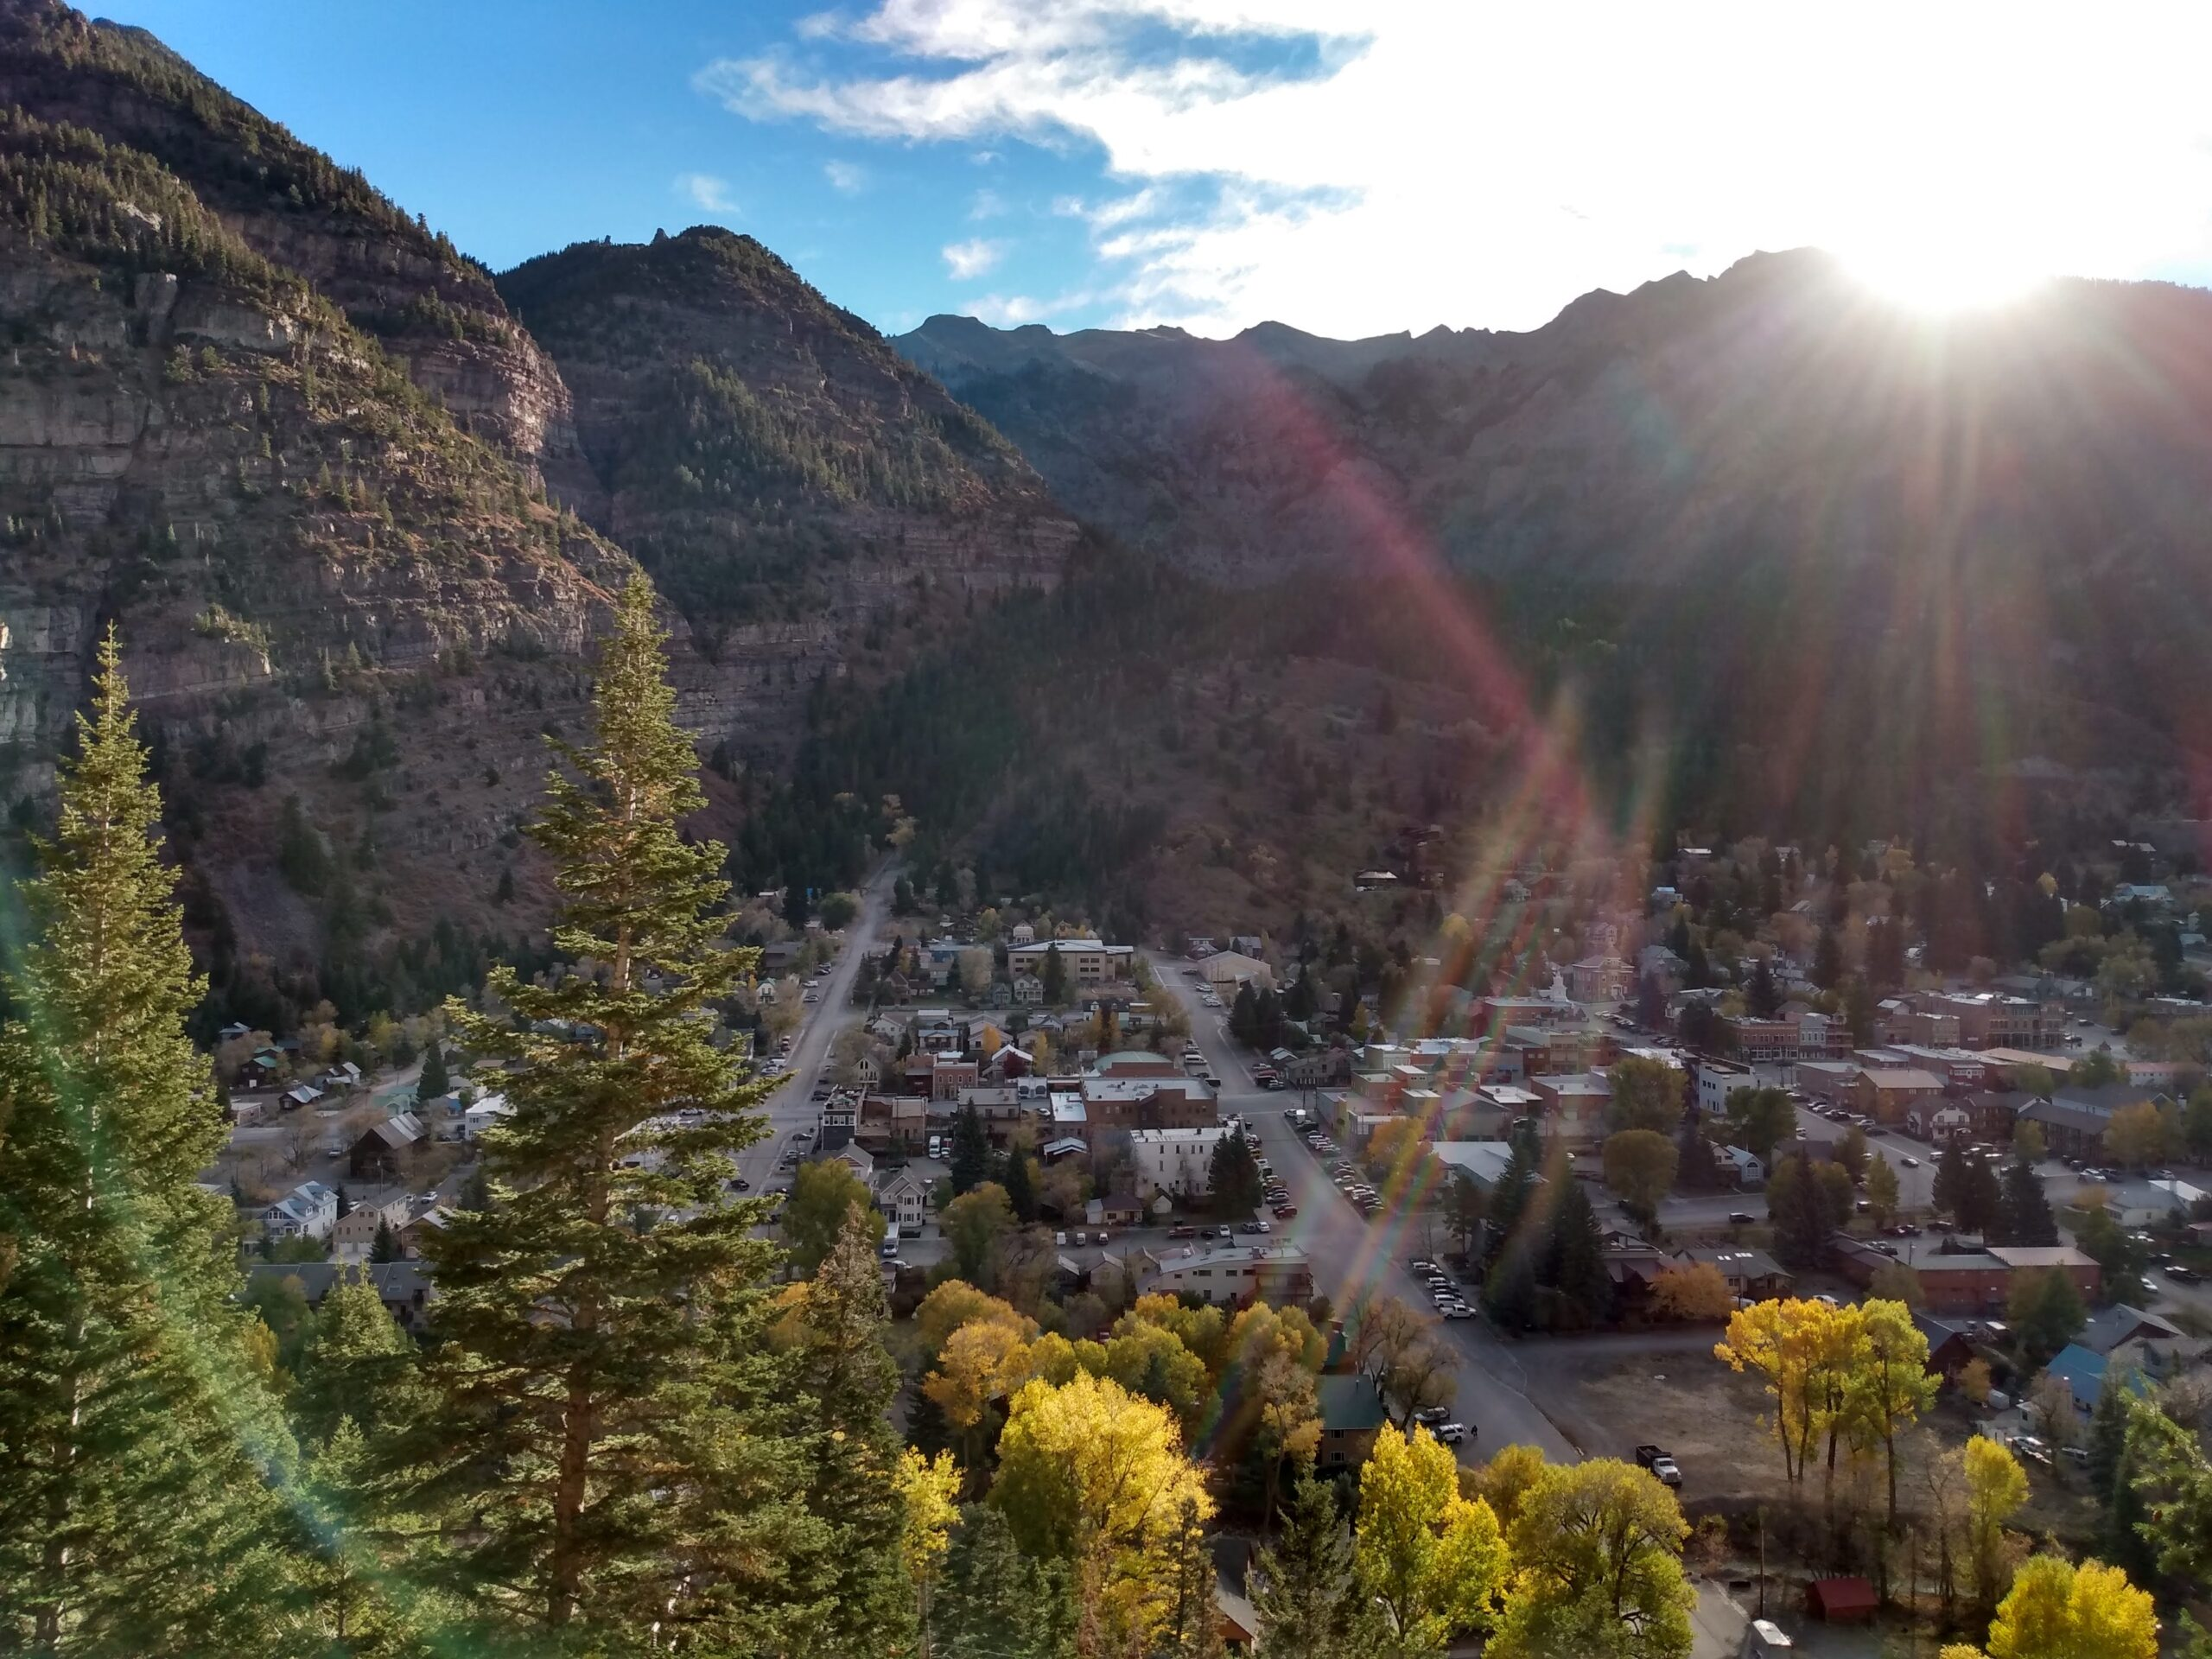 View of Ouray from the perimeter trail Sep 2020